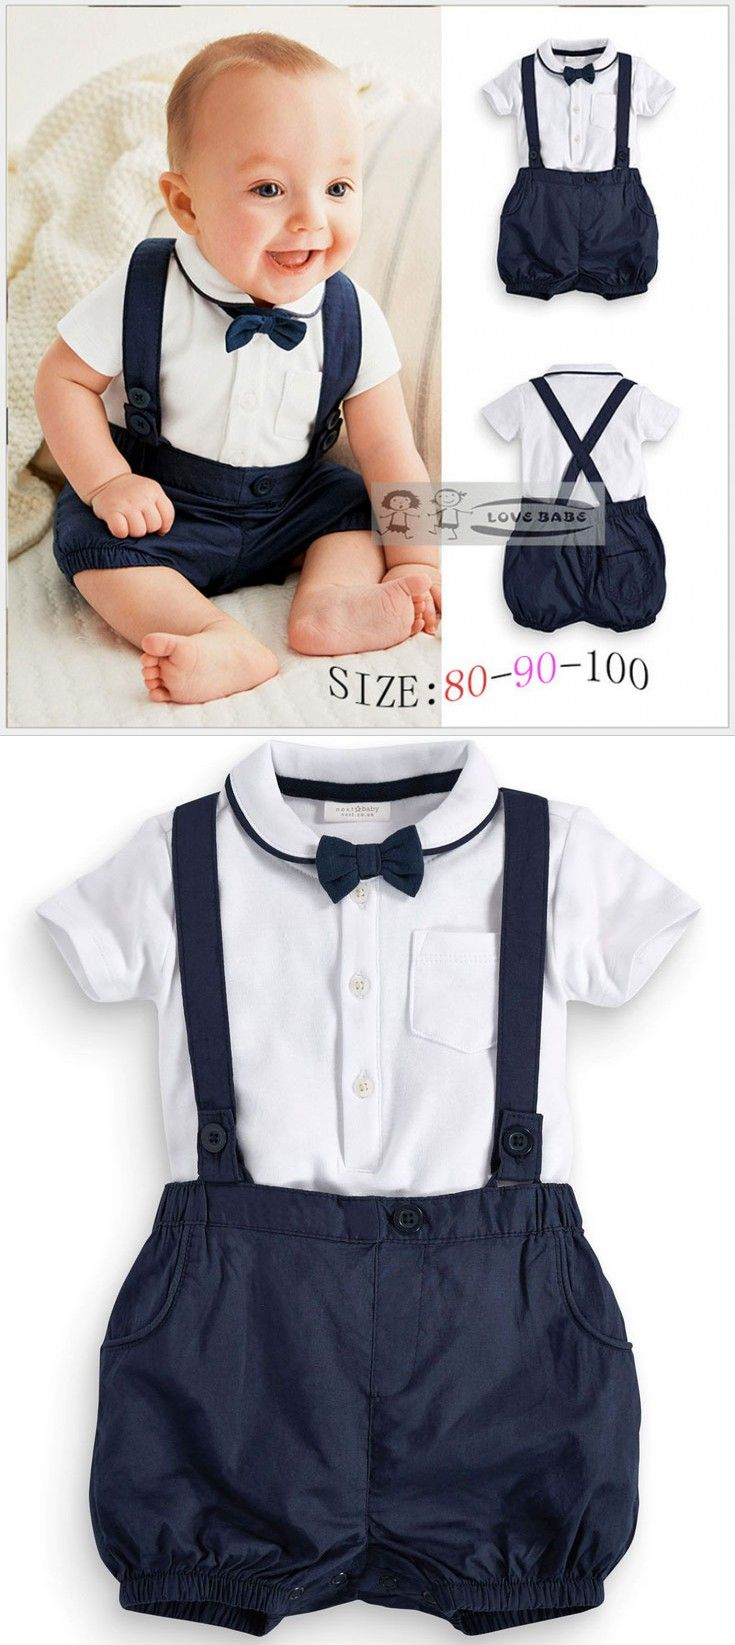 812453e3b Summer Baby Clothing Cotton 2pcs Suit Short Infant Boy Gentleman ...